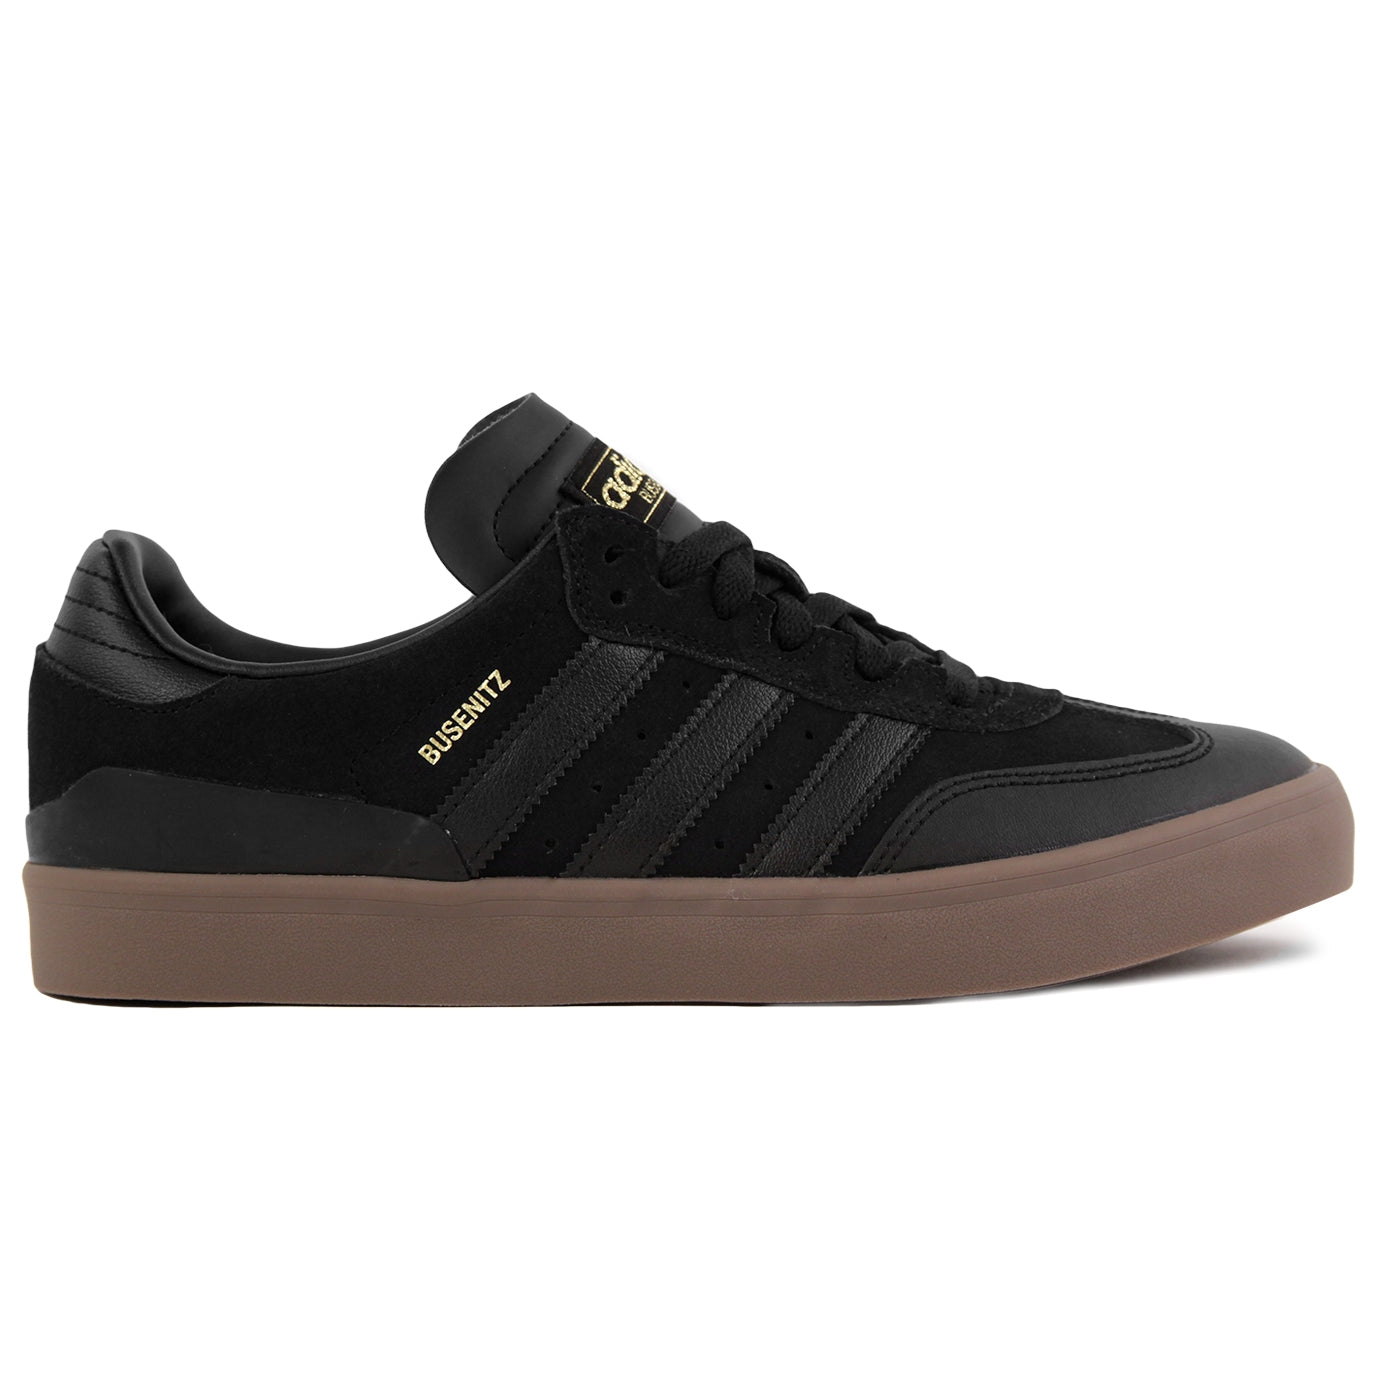 Busenitz Vulc RX Skate Shoes in Core Black   Core Black   Gum by ... a9172fa8f